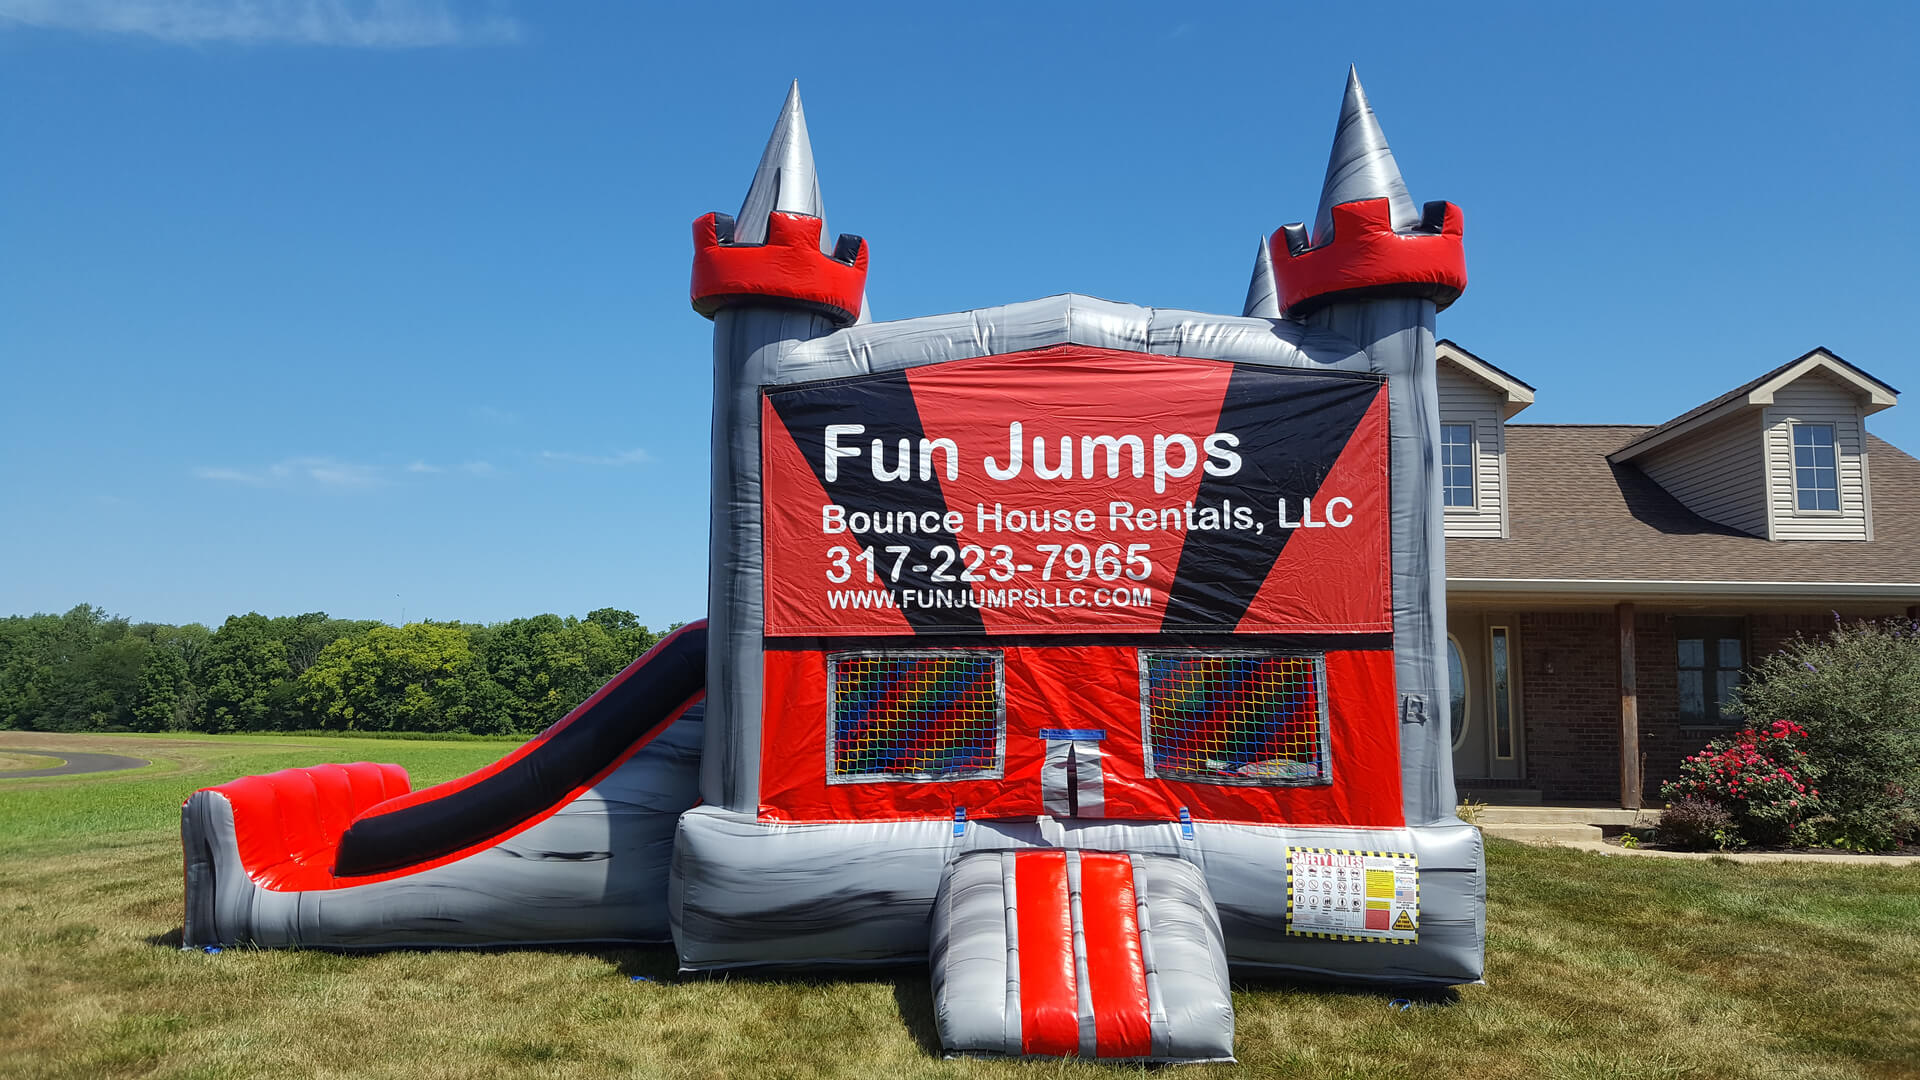 Fun Jumps LLC